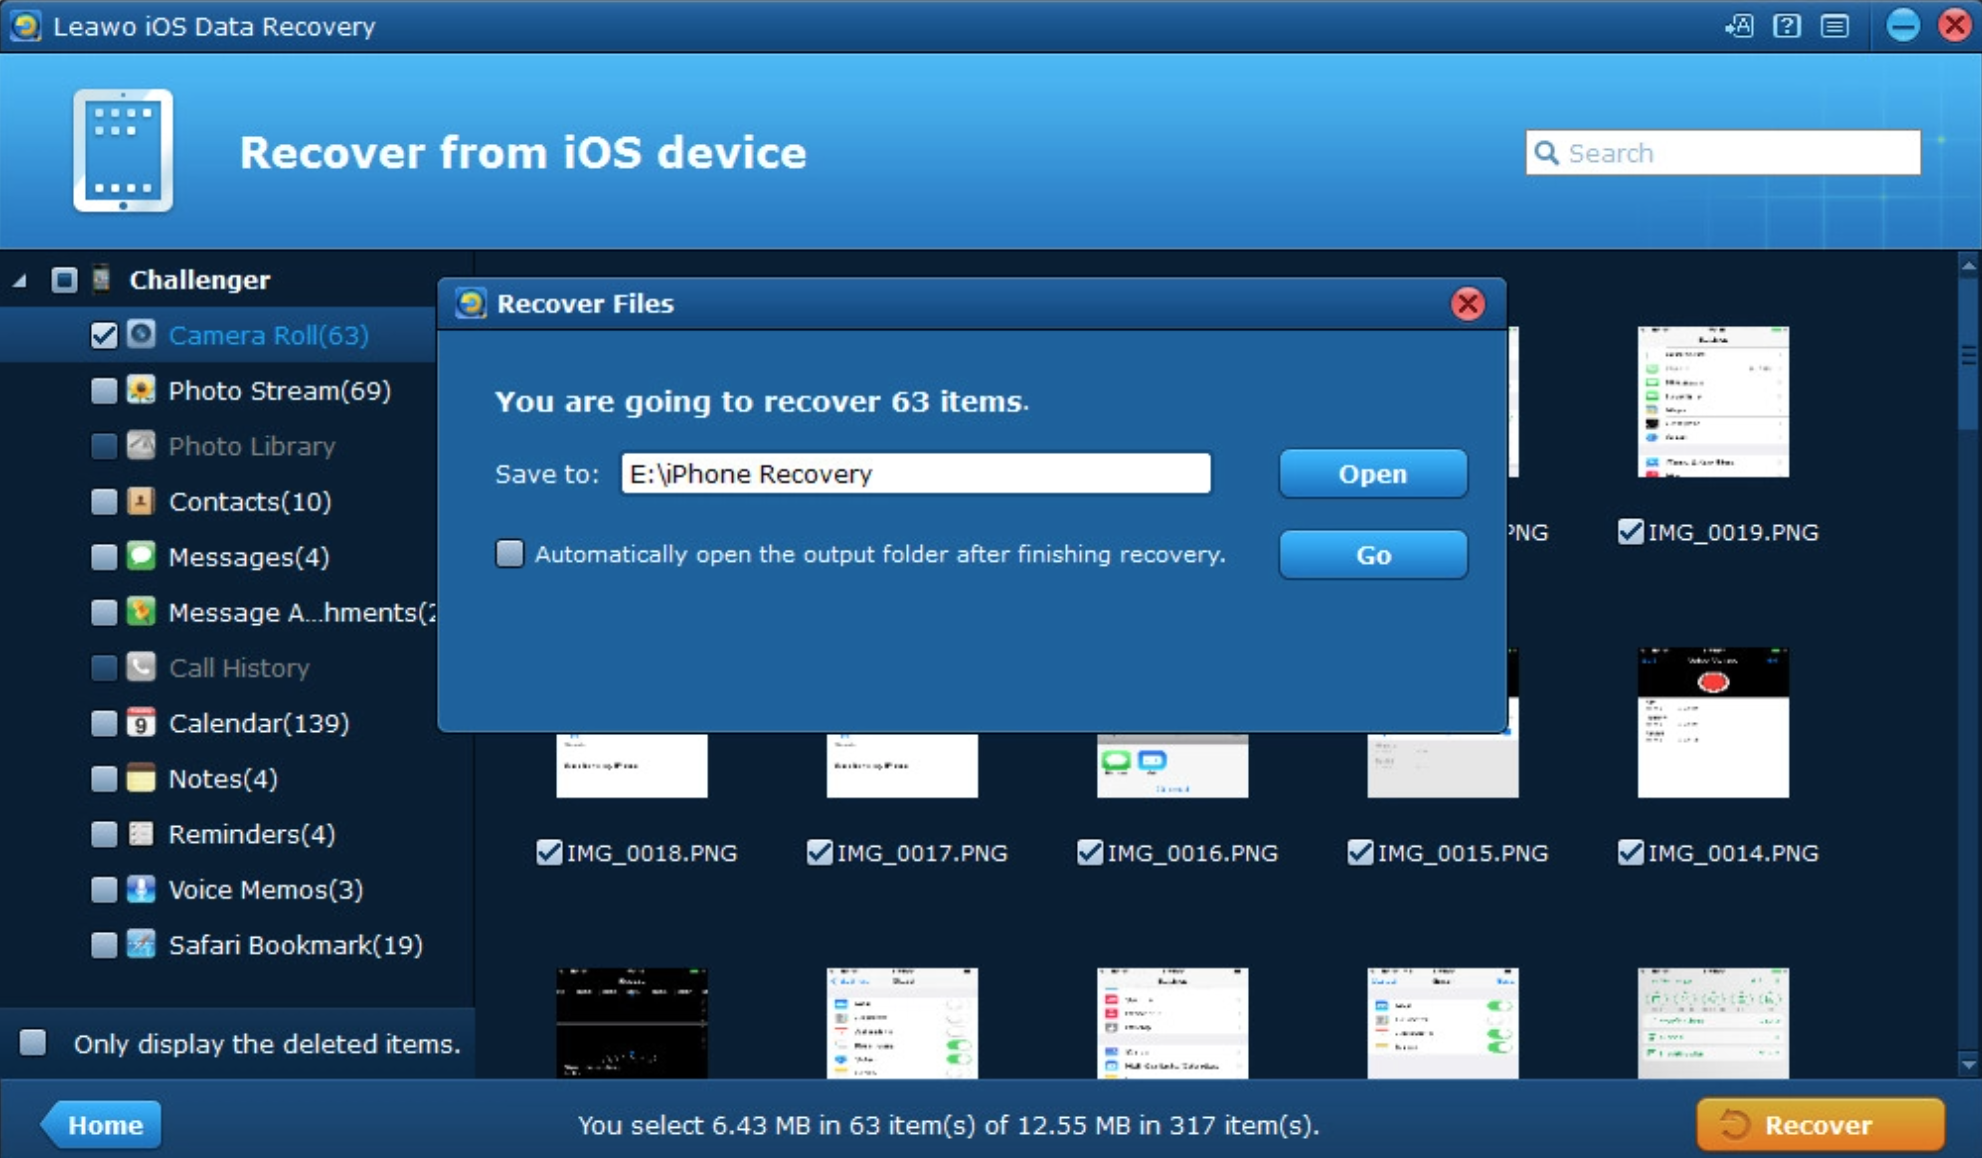 recover-voice-memos-using-iOS-data-recovery 04